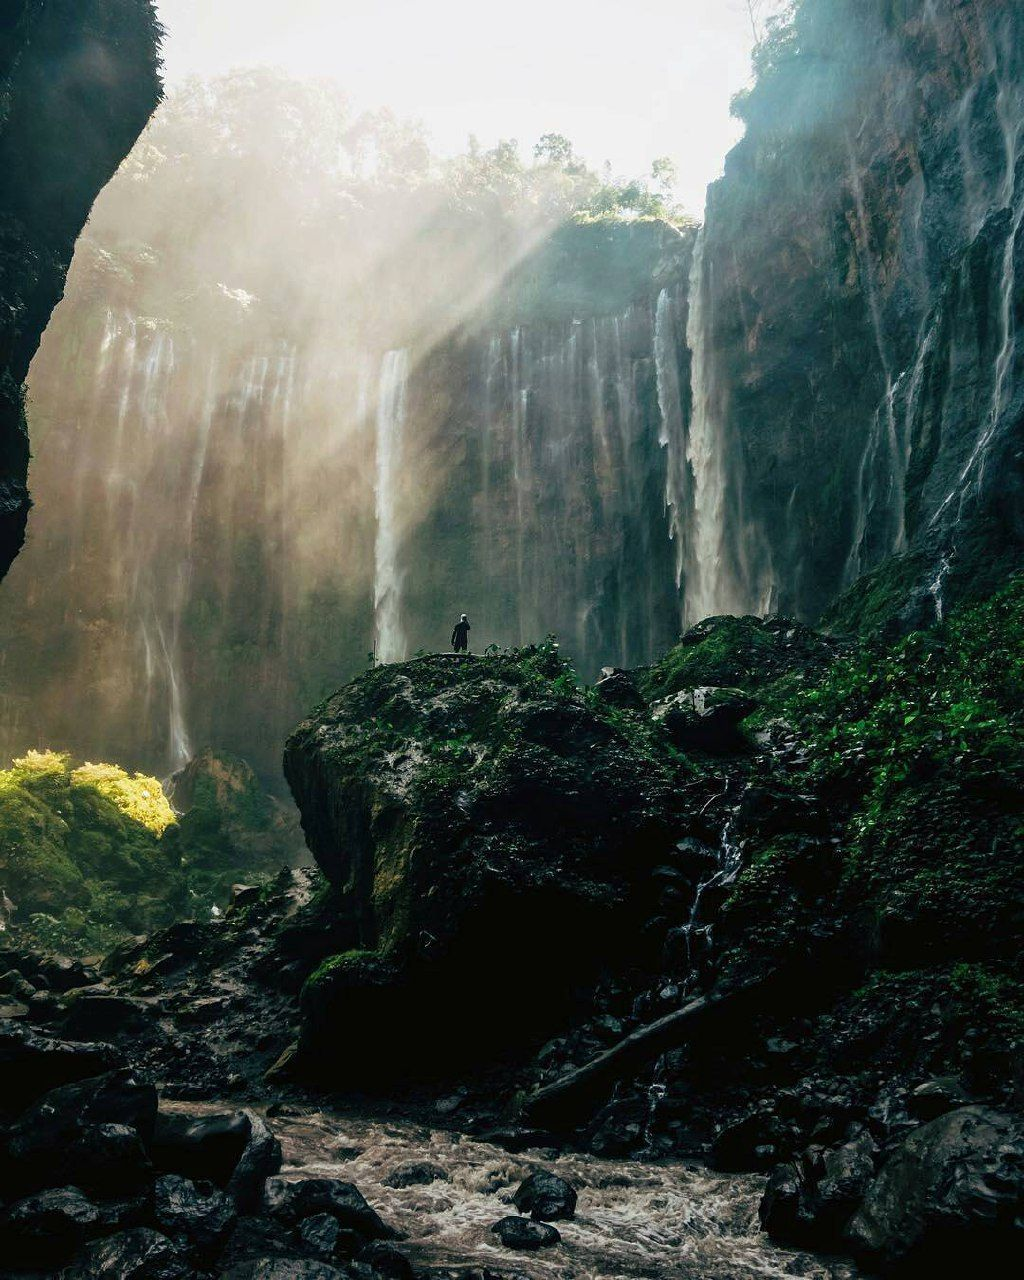 Explore The Beauty Of Tumpak Sewu #Waterfall, #Lumajang